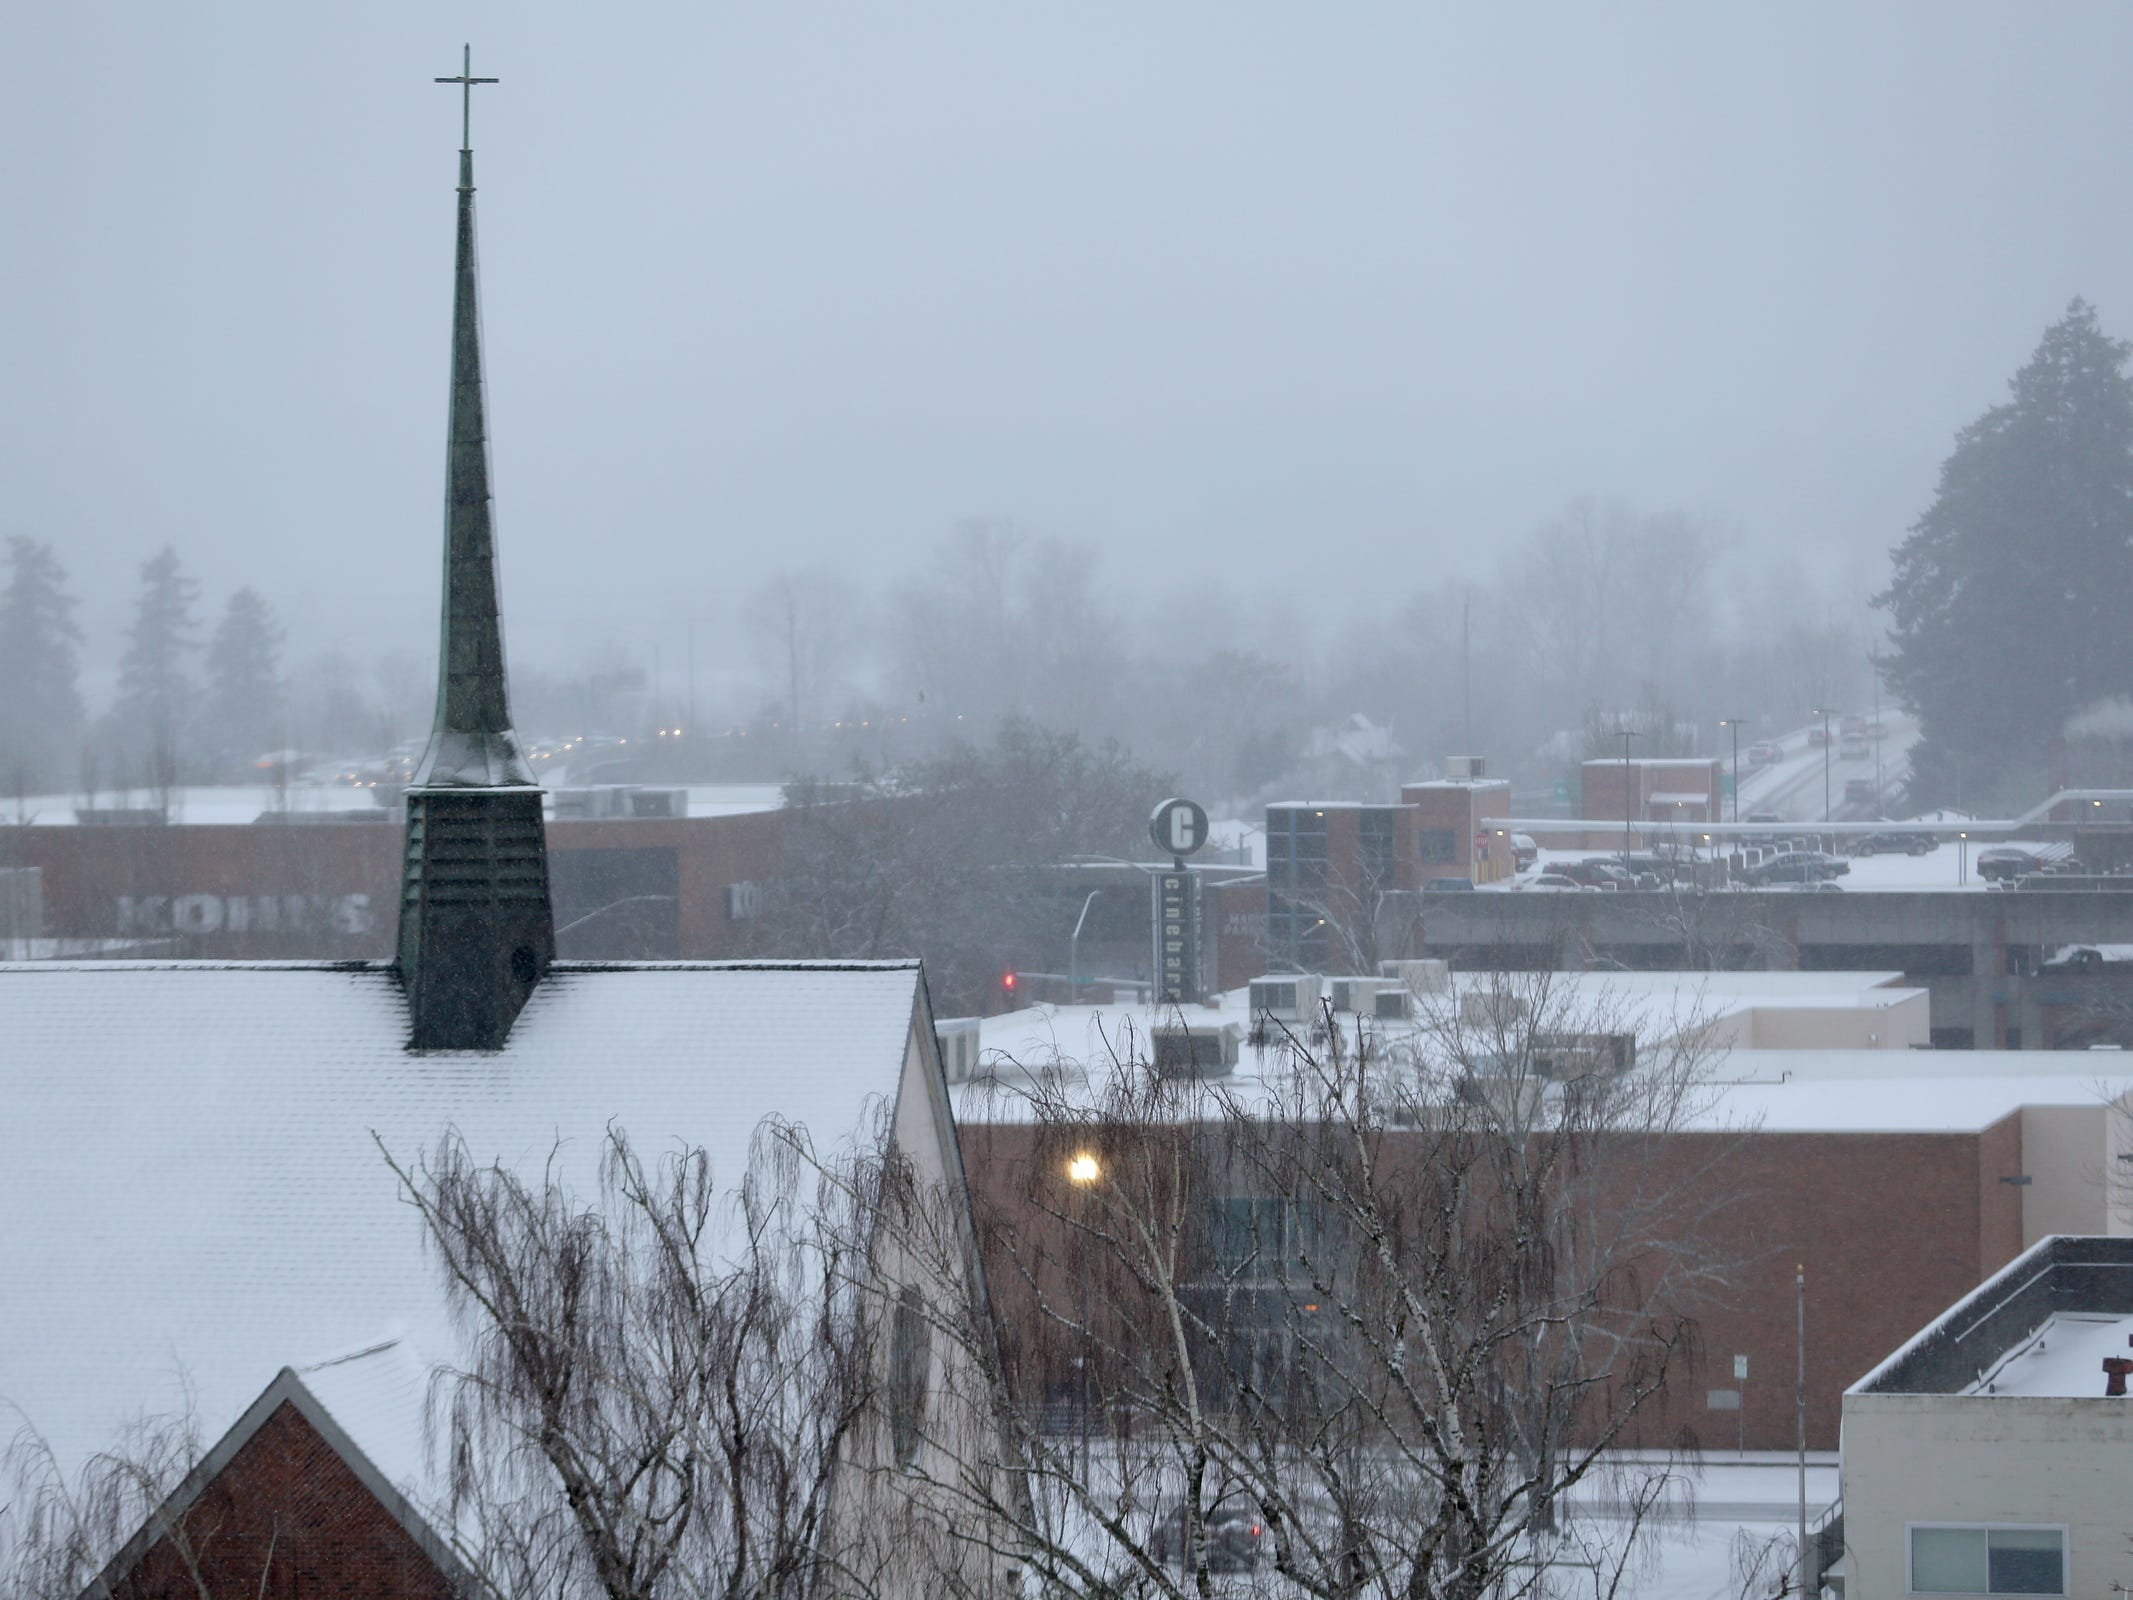 Snow blankets Salem on Wednesday, Feb. 27, 2019.